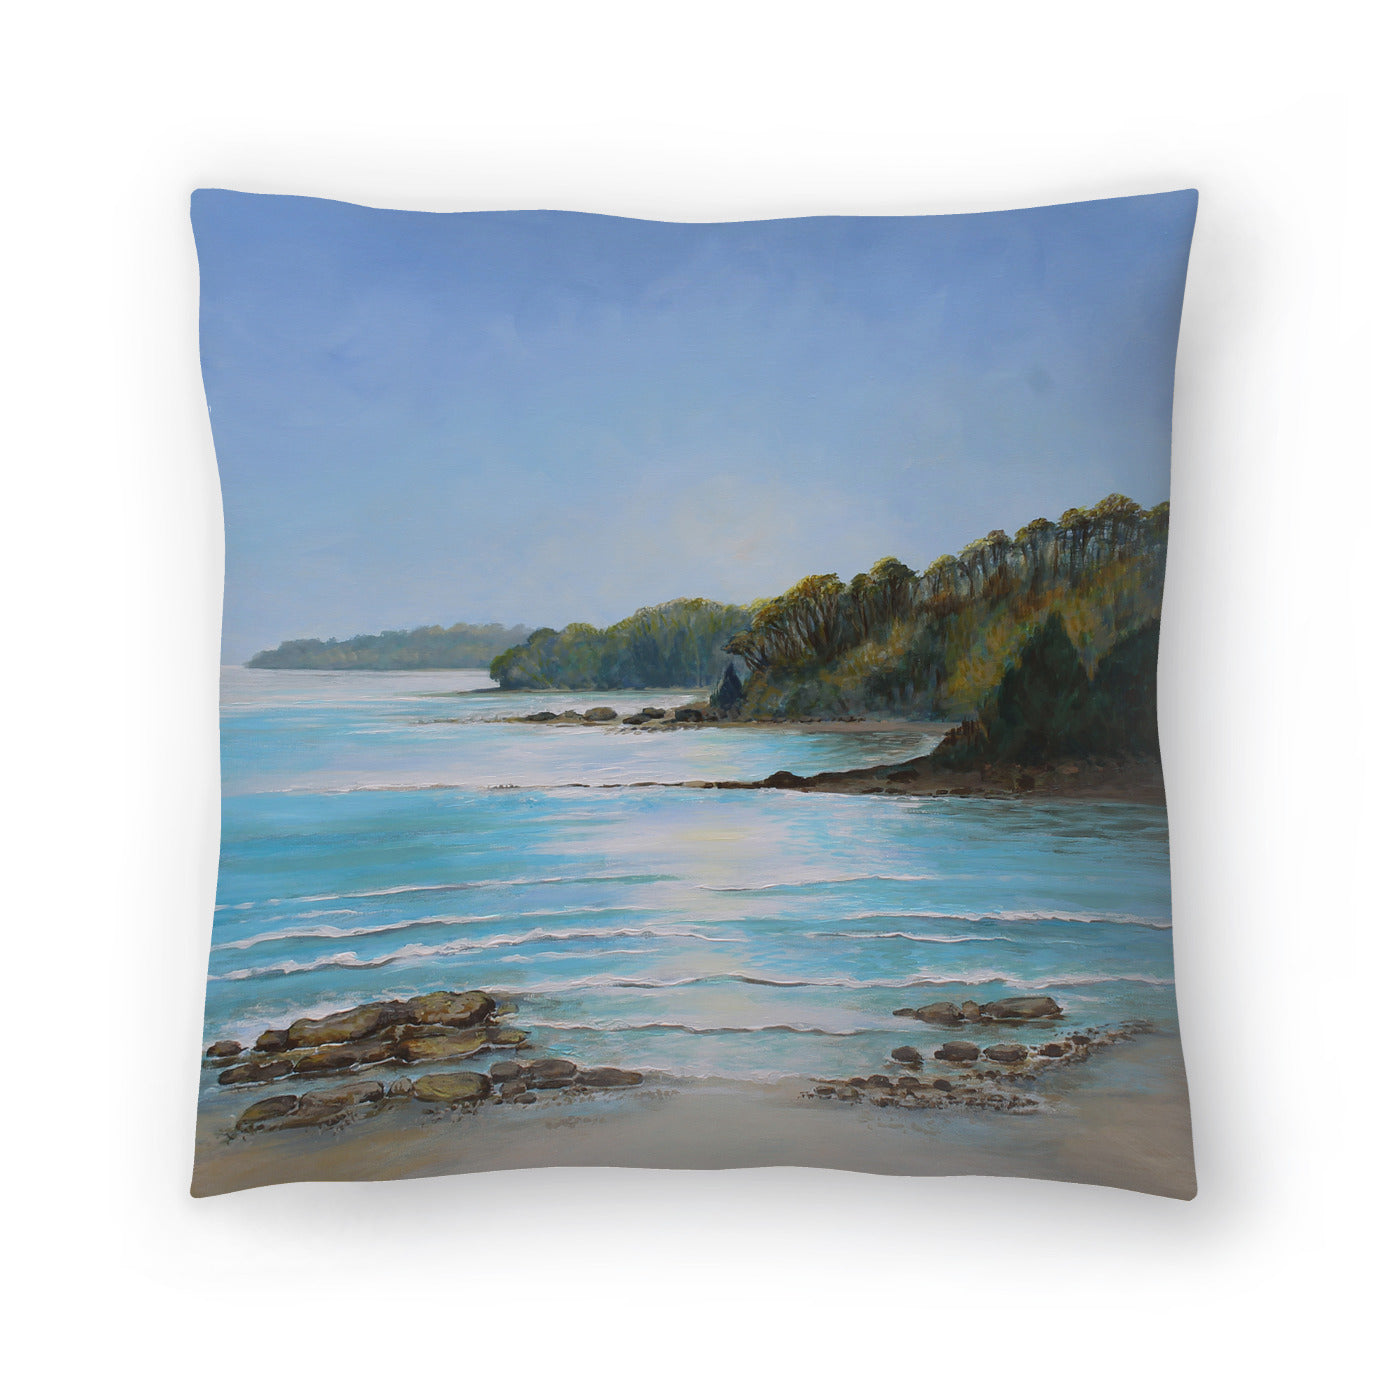 Sea Grove Morning by Sandra Francis Decorative Pillow - Decorative Pillow - Americanflat